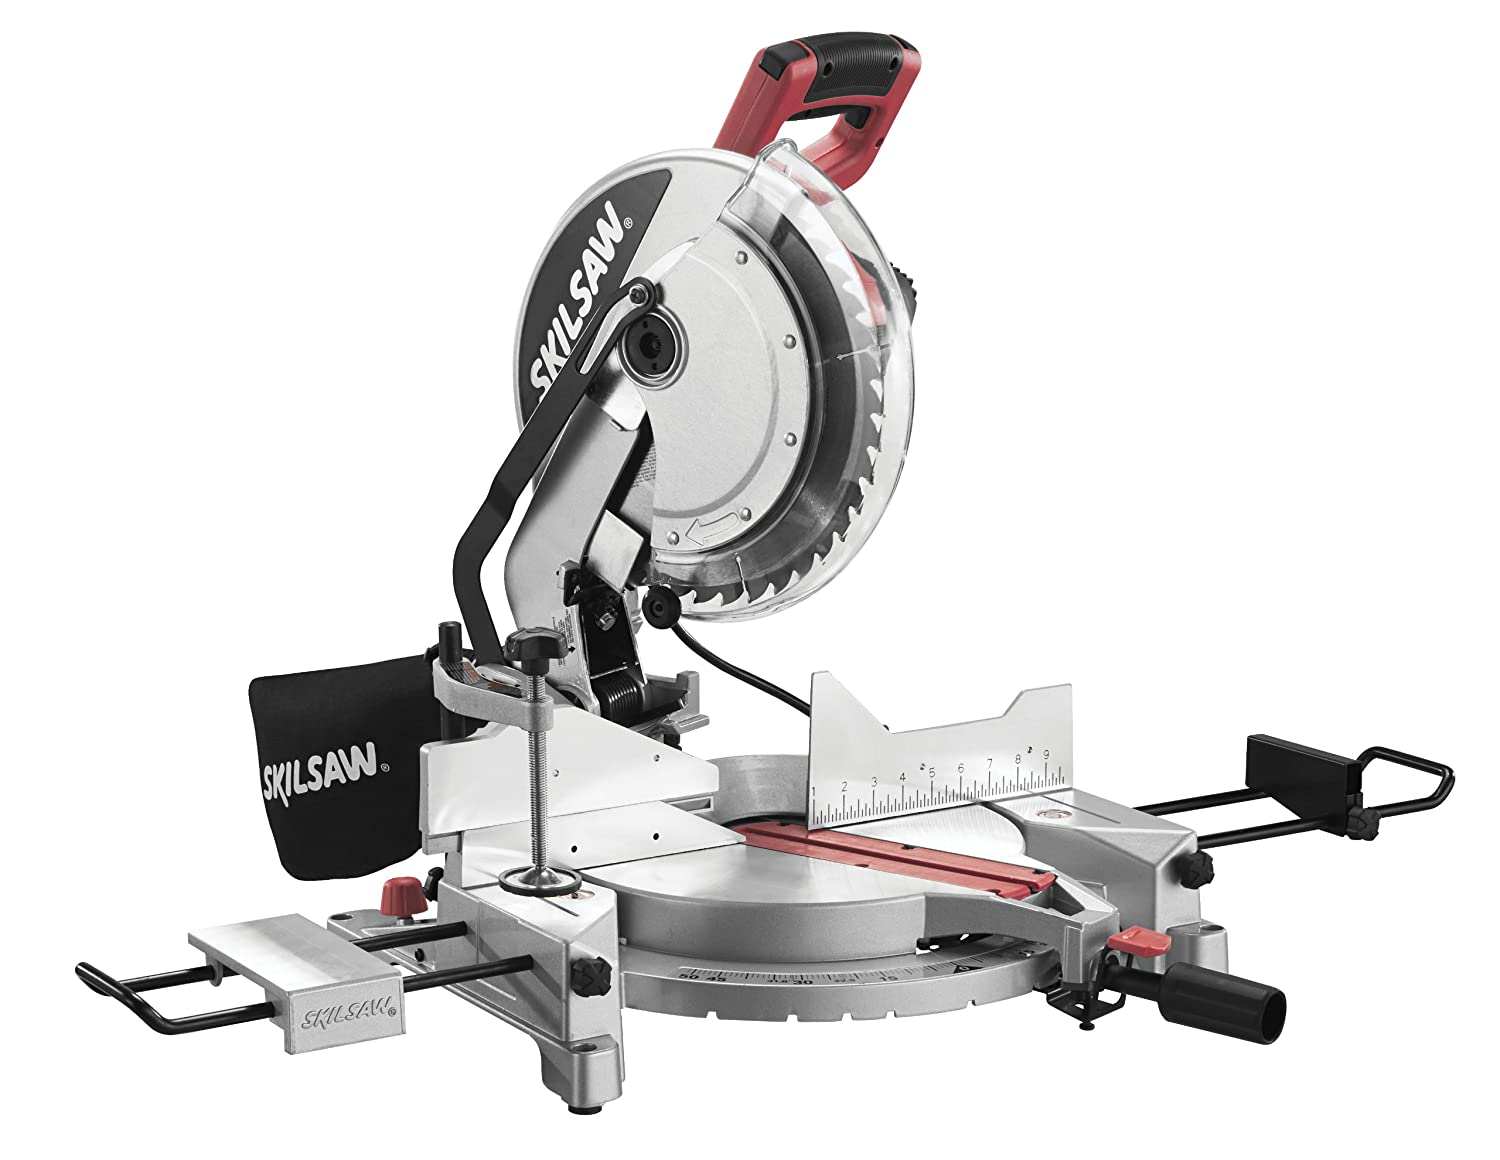 The Best Compound Miter Saw 3